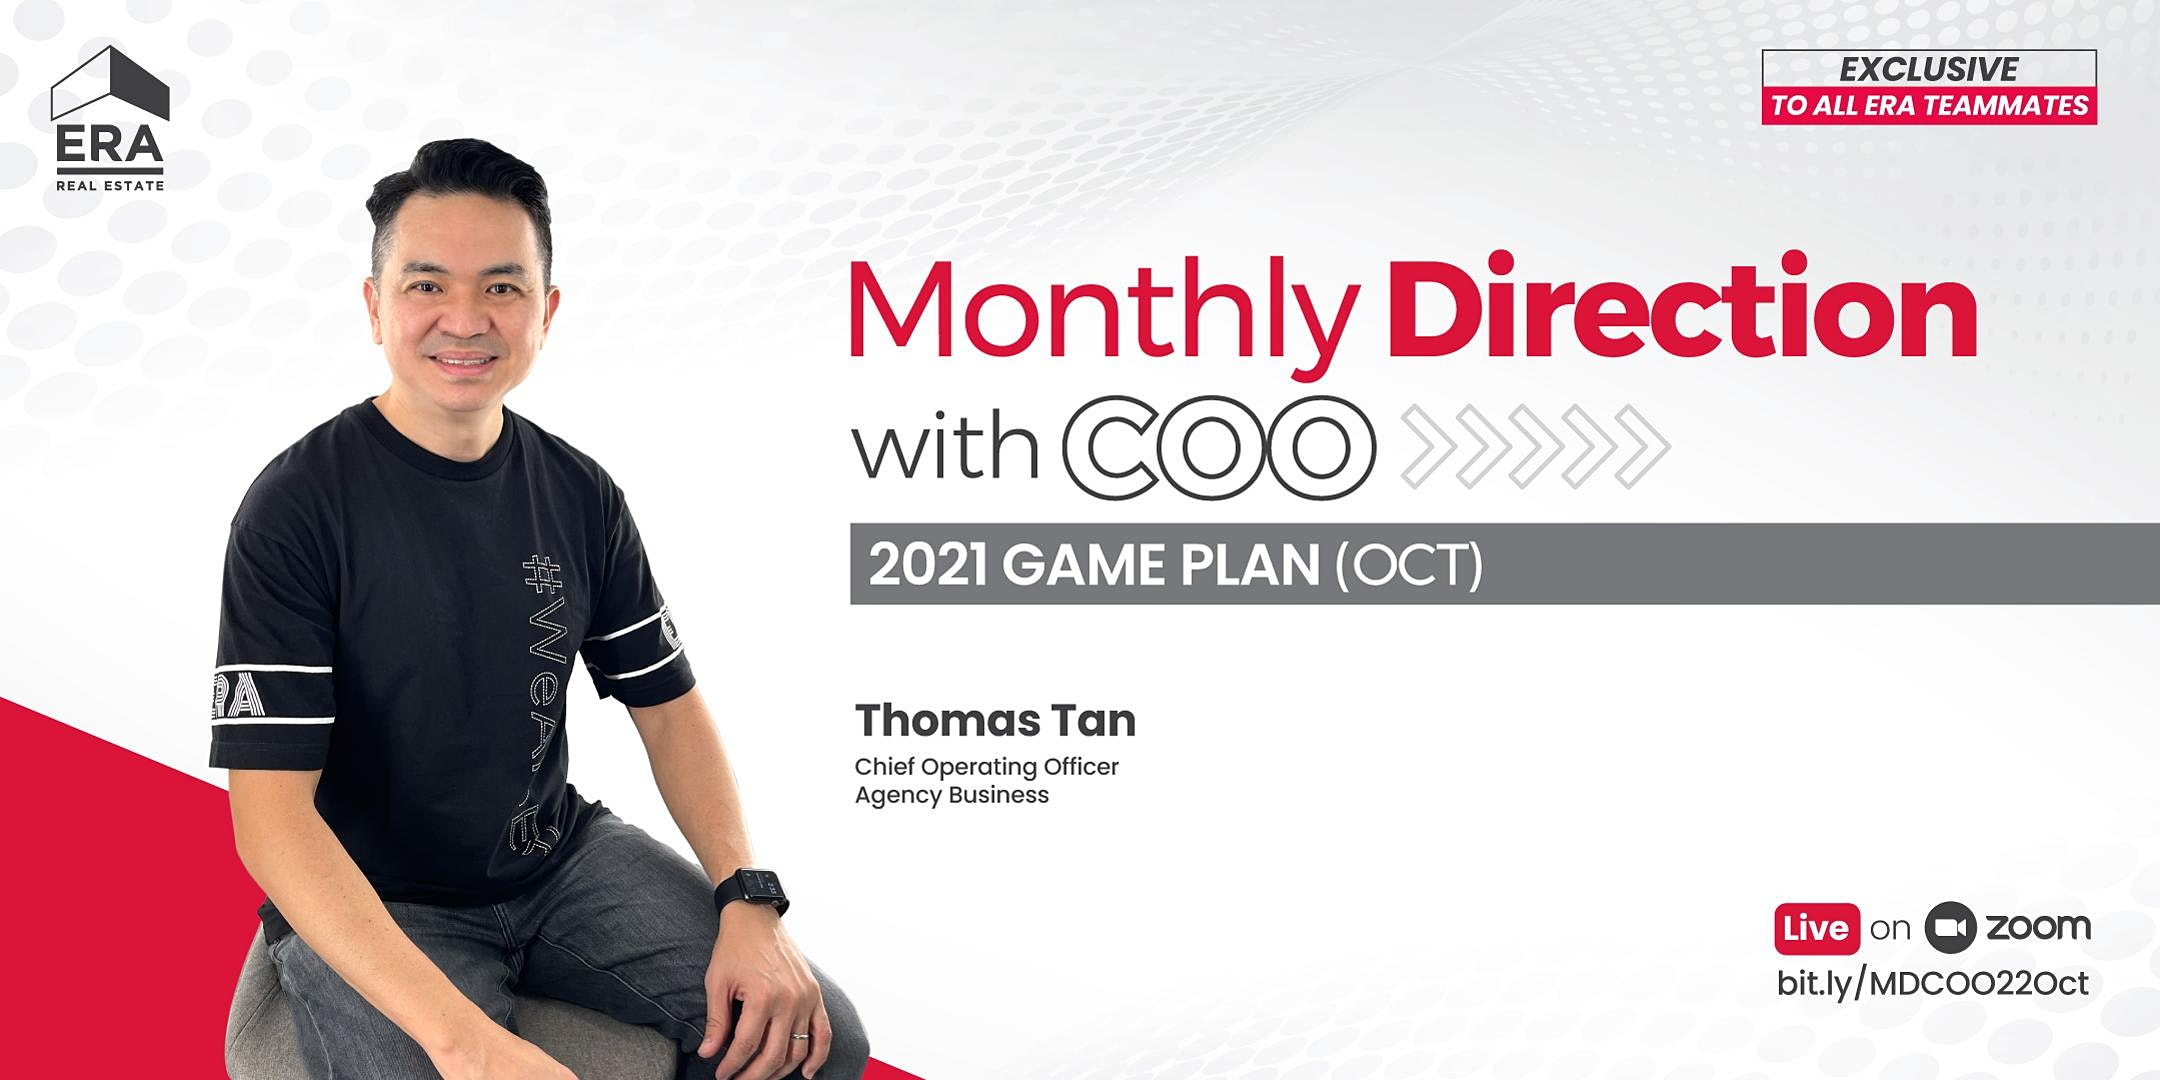 Monthly Direction with COO Thomas Tan